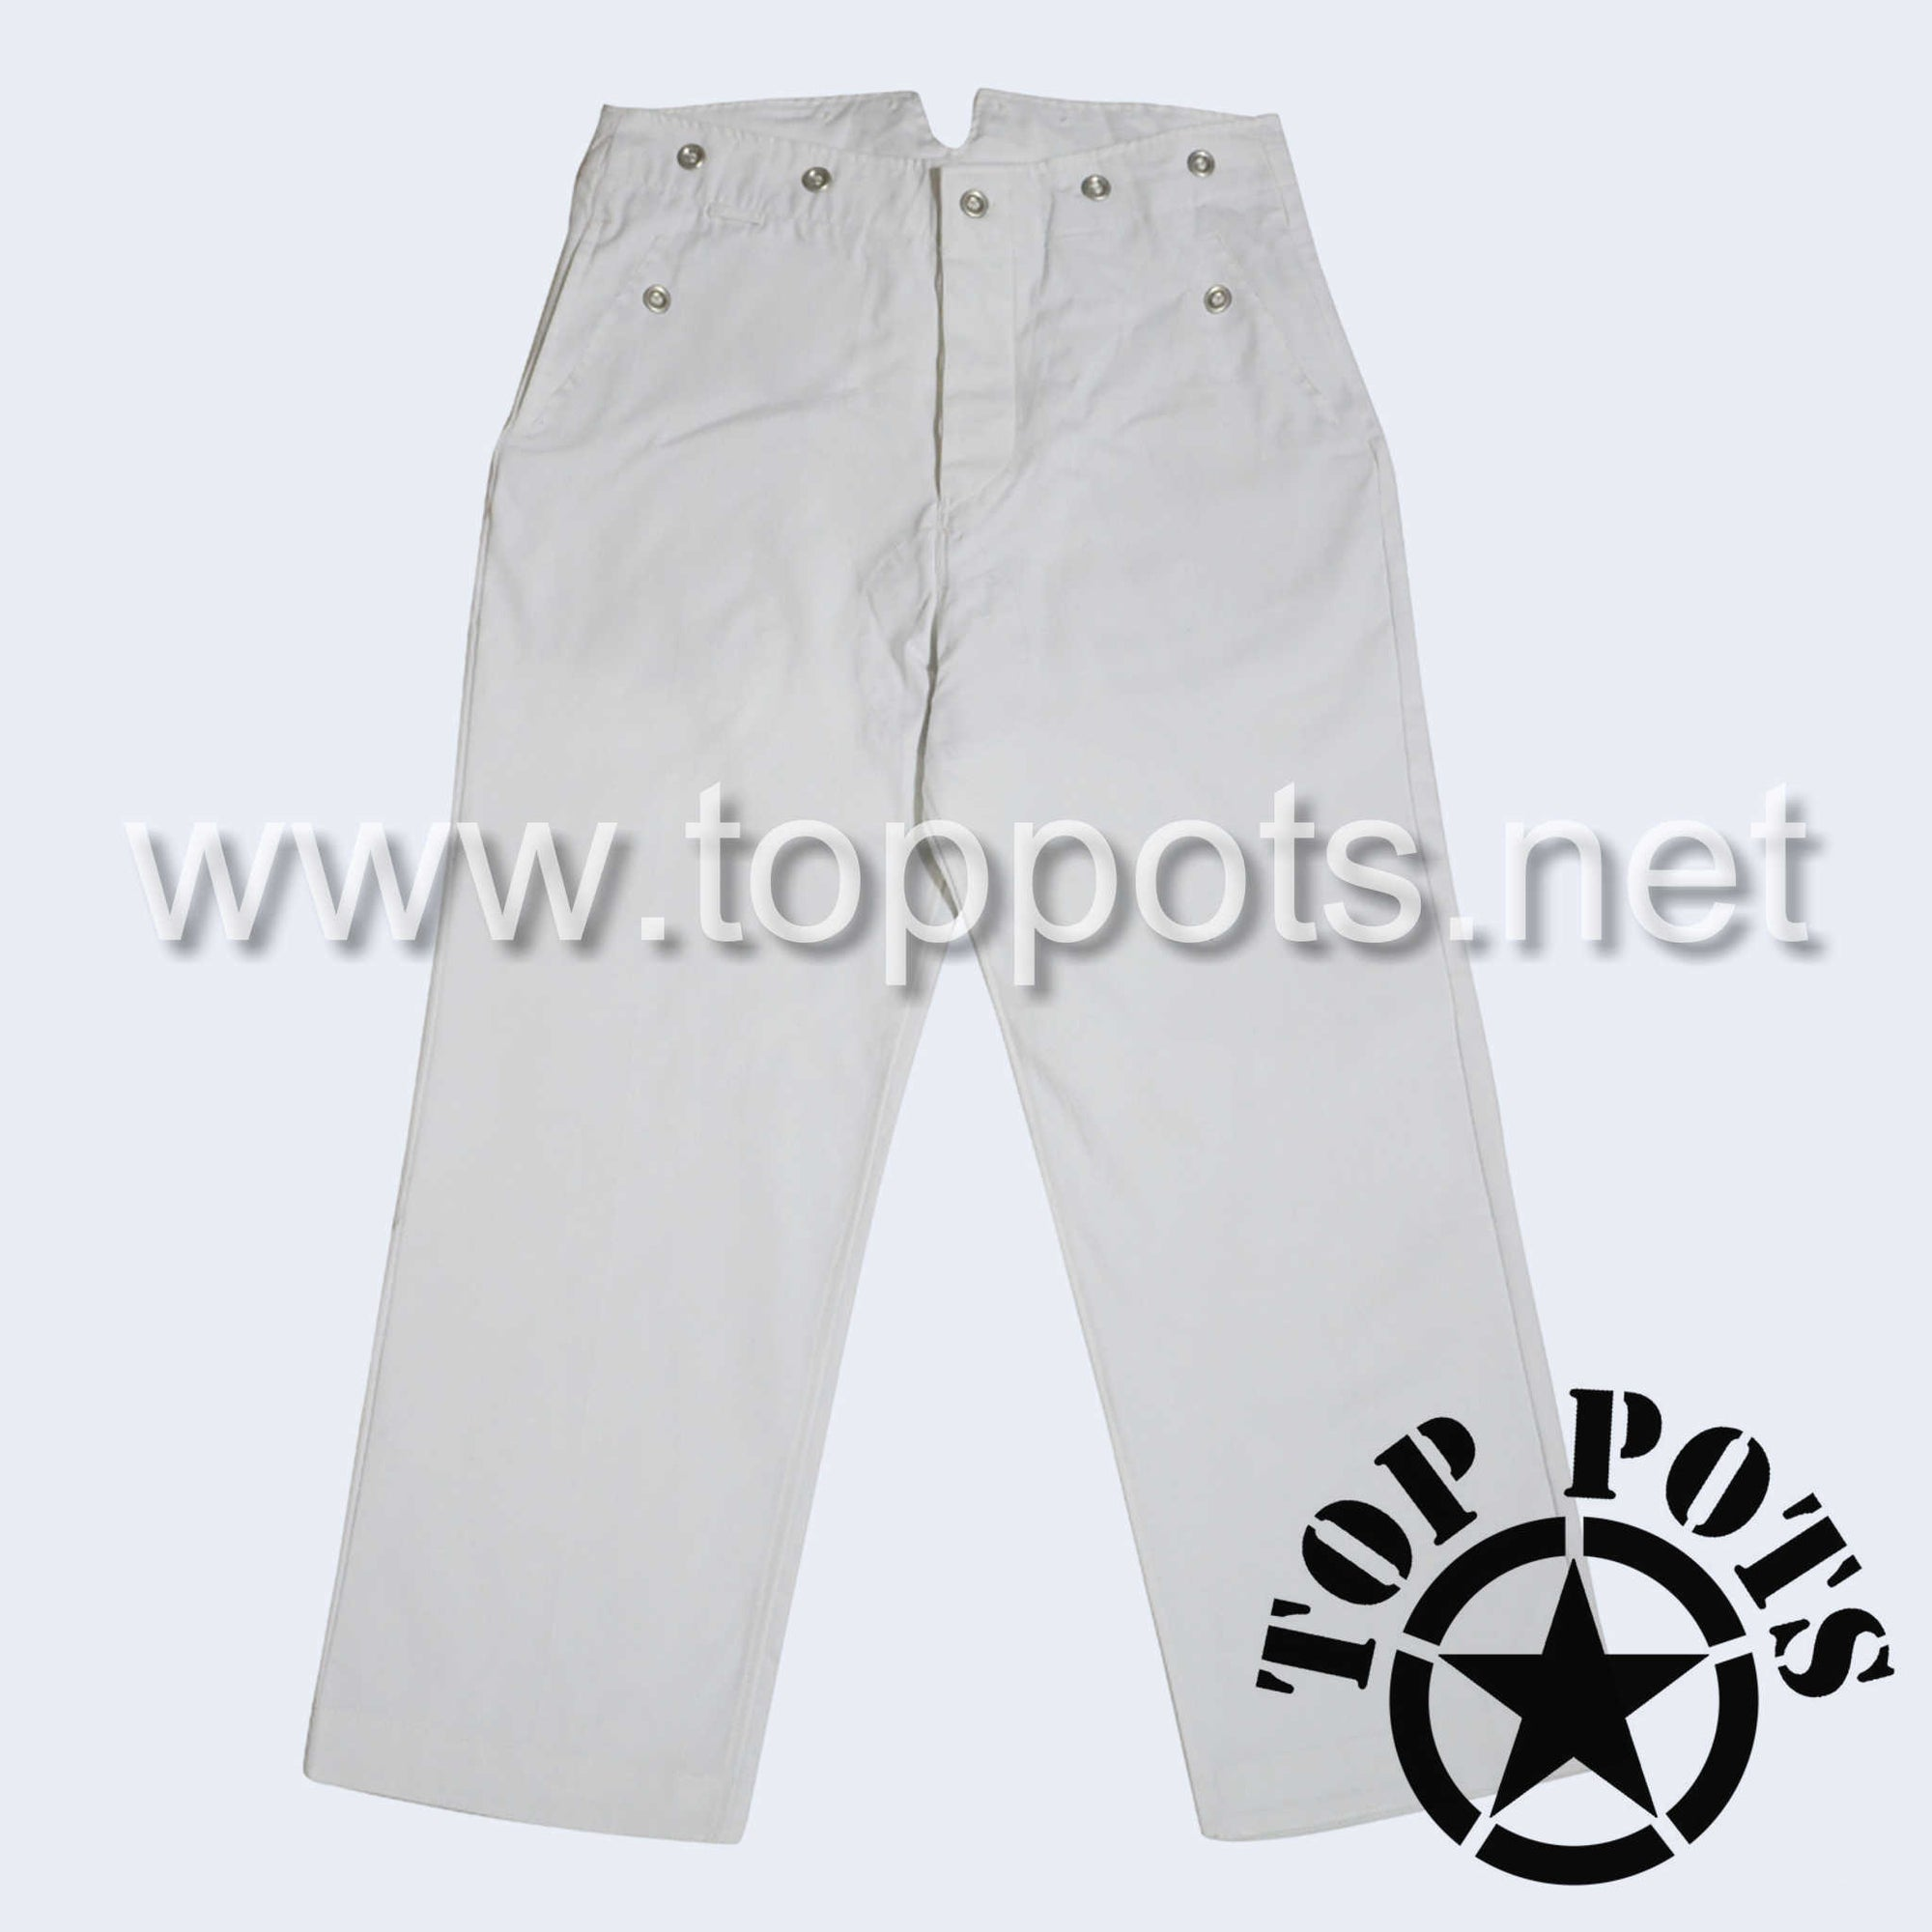 WWII German Navy Kriegsmarine Summer Uniform Pants White Cotton - Officer's Trousers